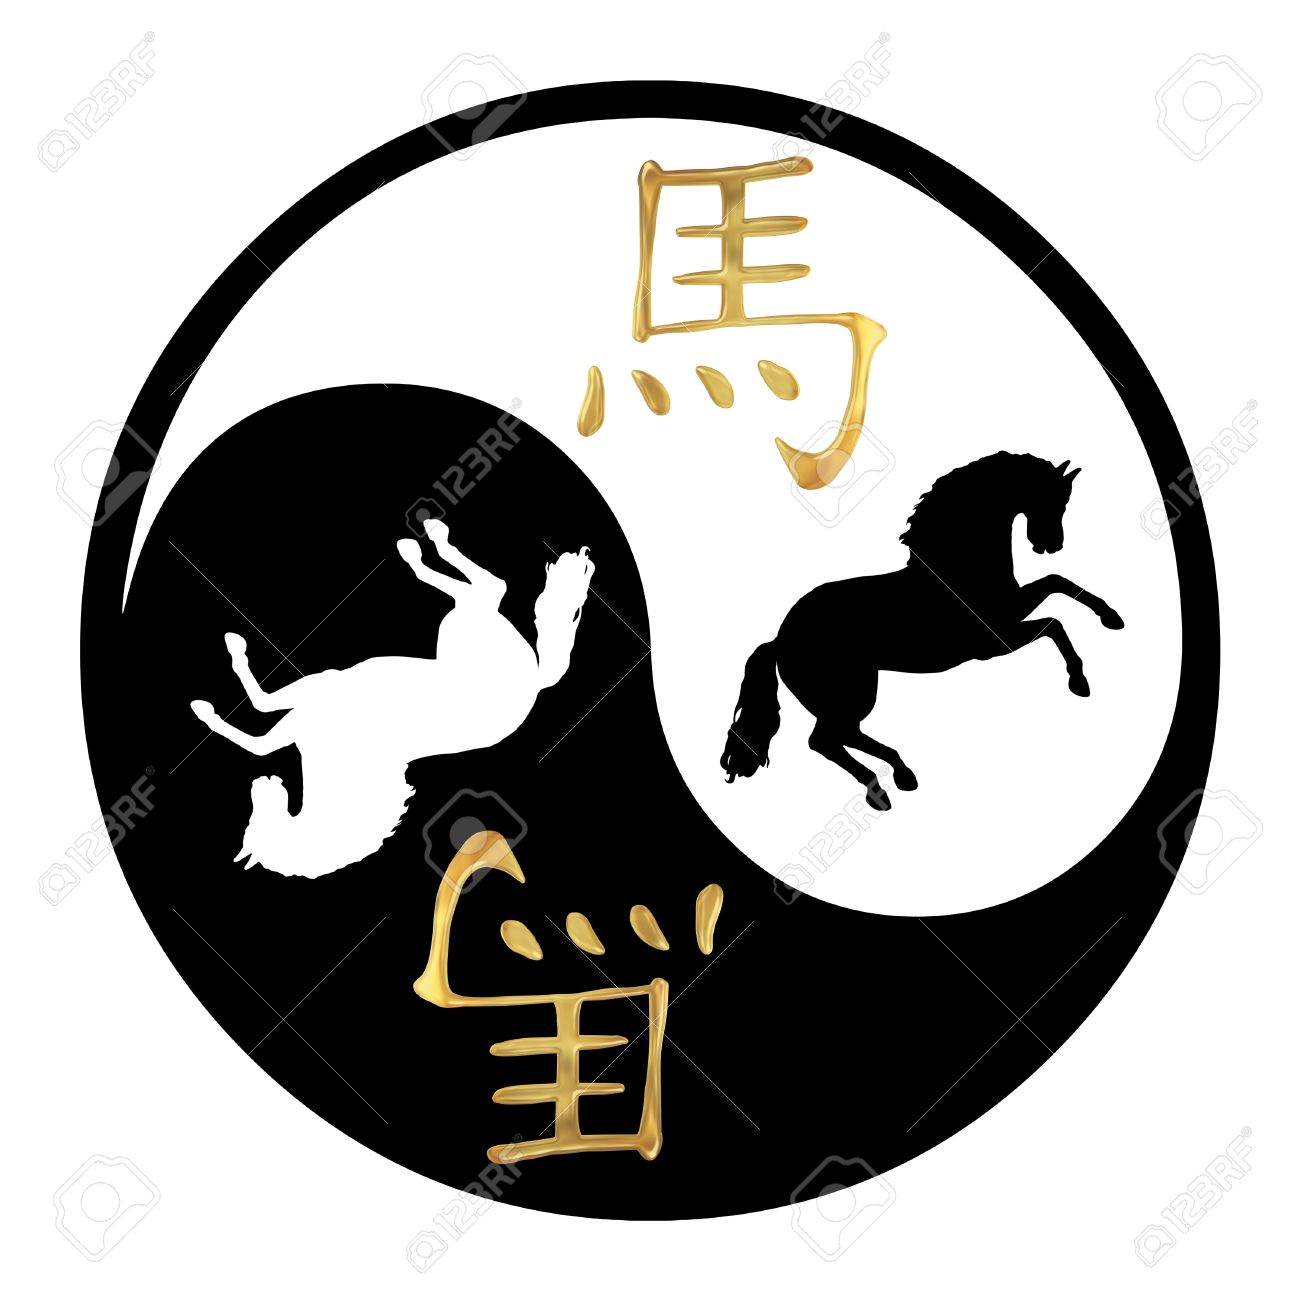 Yin yang symbol with chinese text and image of a horse stock photo yin yang symbol with chinese text and image of a horse stock photo 9551585 biocorpaavc